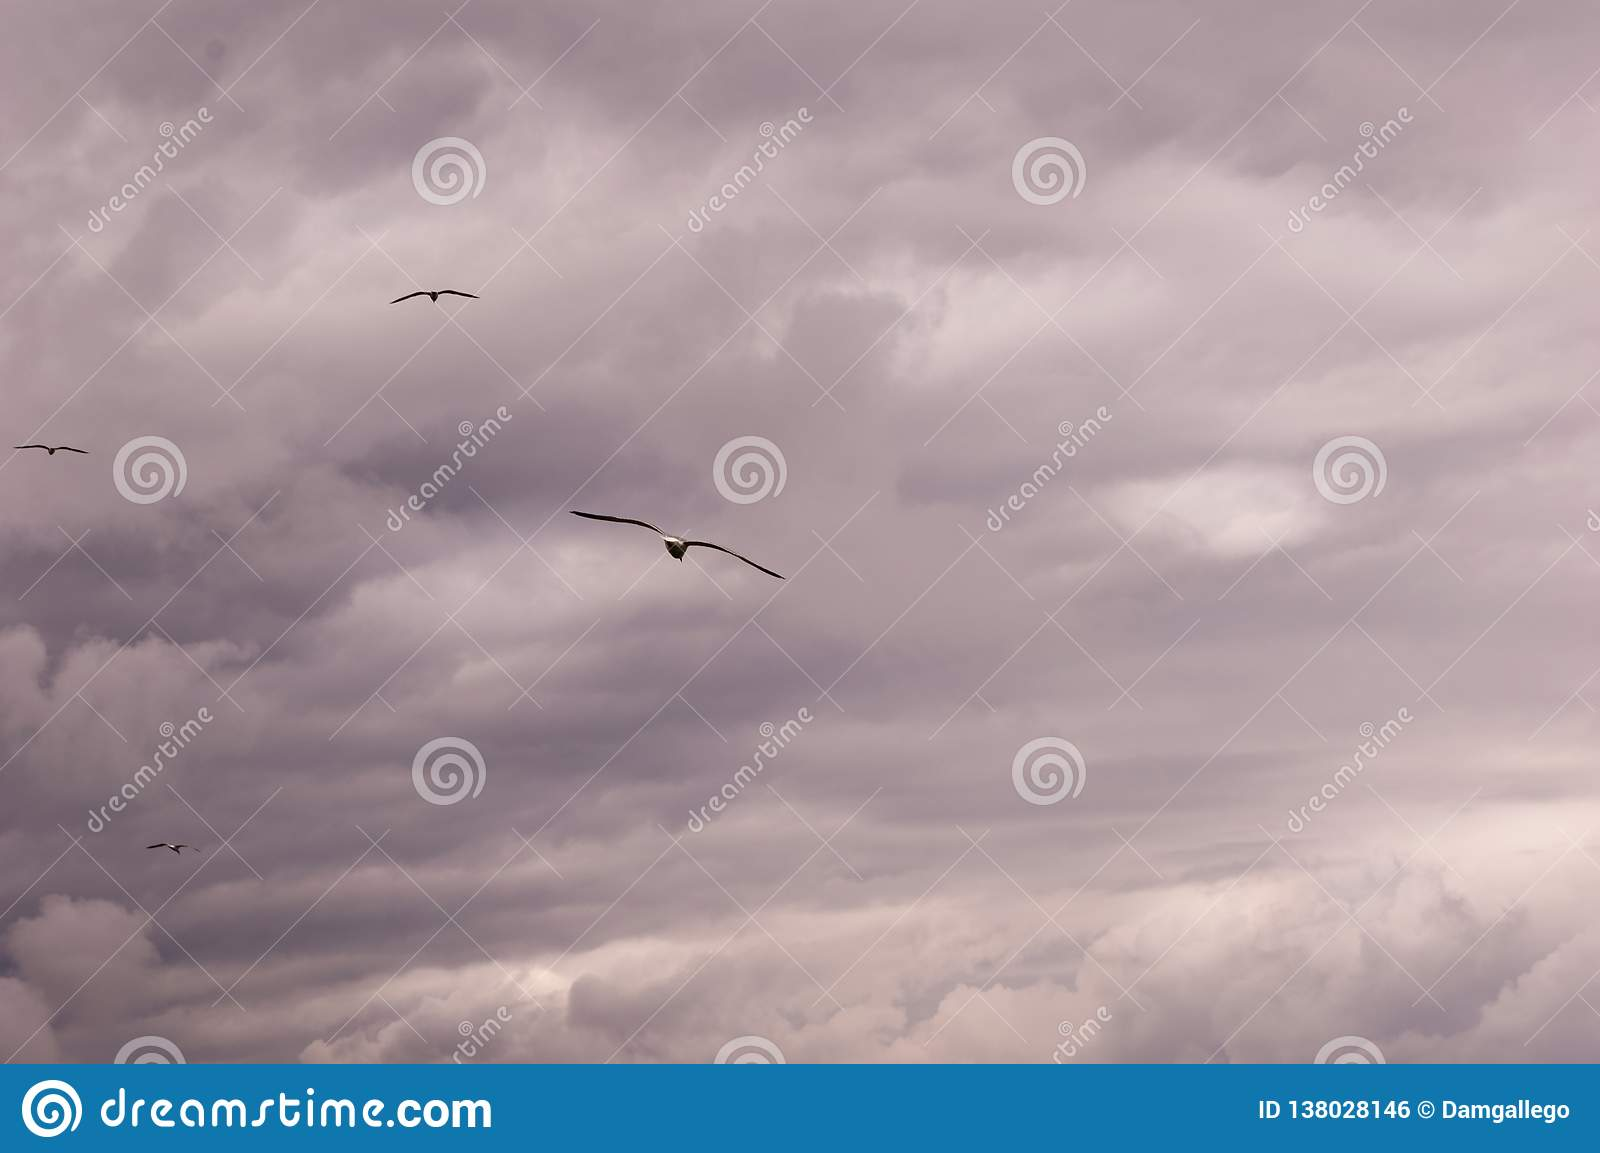 Panoramic view of a group of seagulls flying against a stormy sky-scape